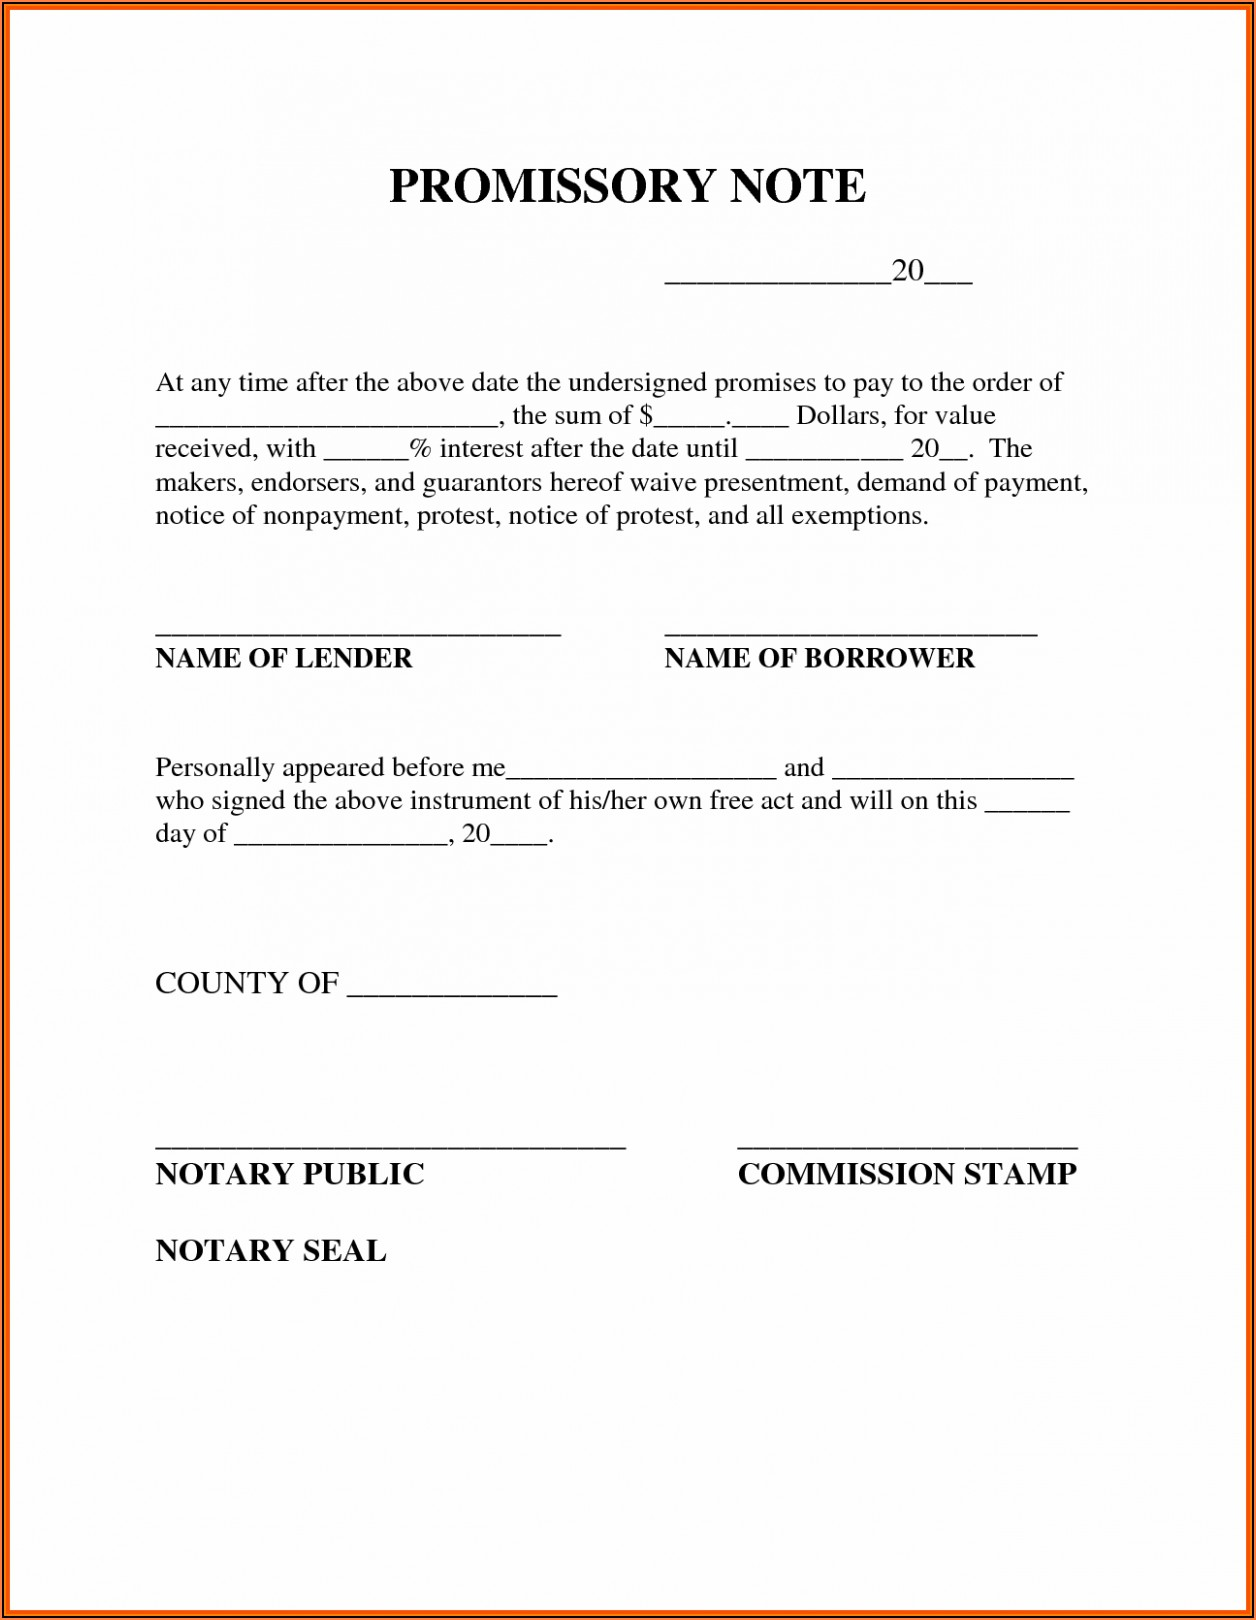 Sample Format Promissory Note Philippines